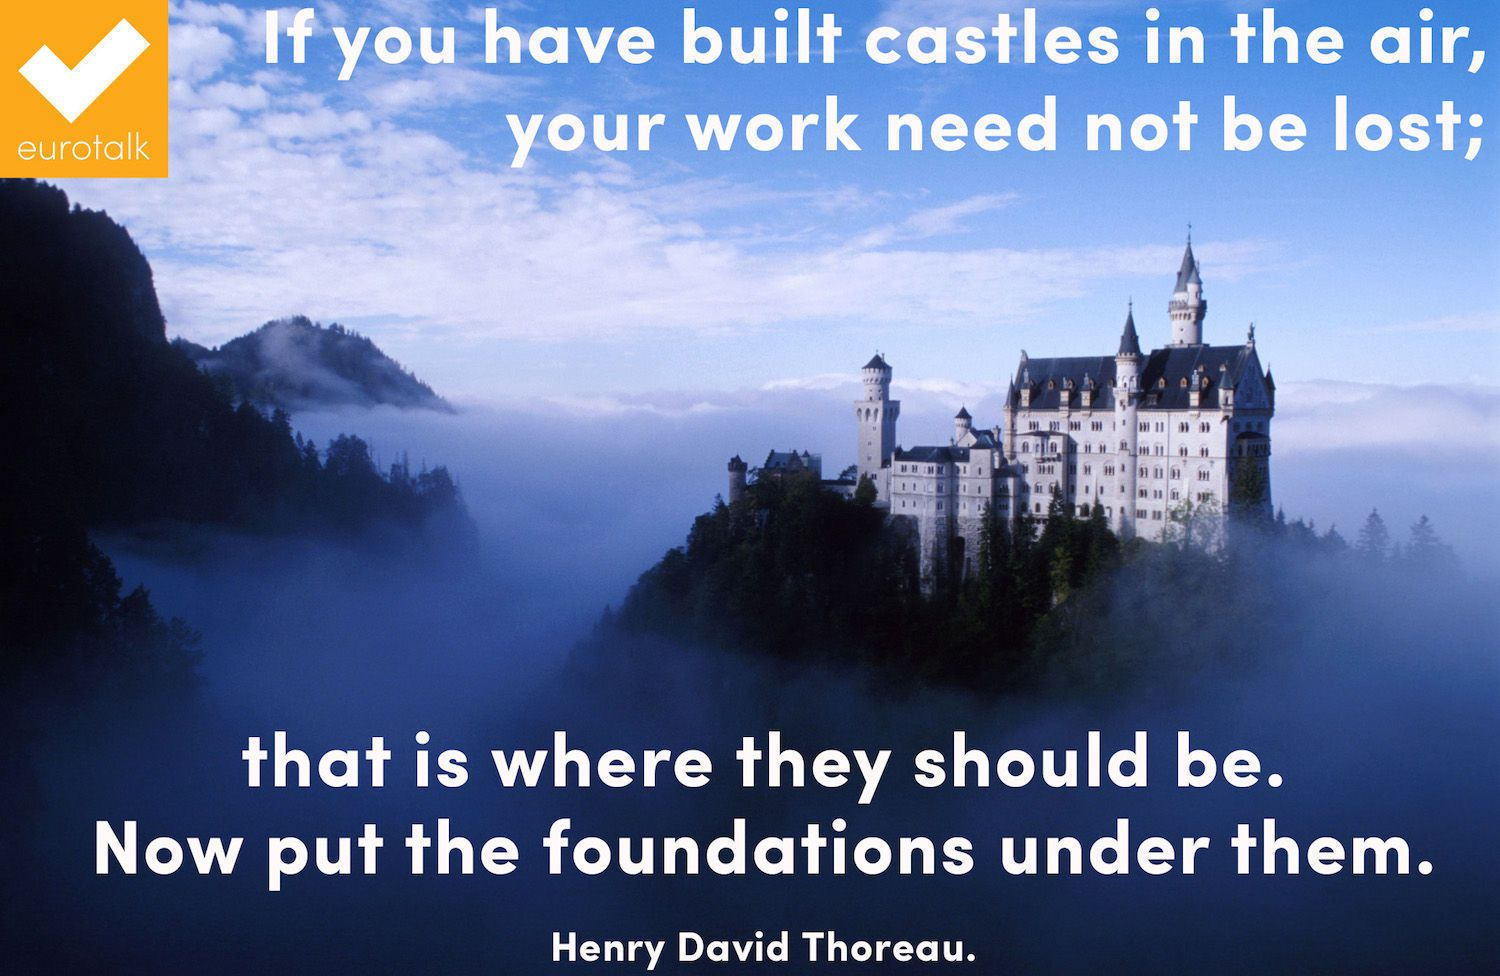 Quotes About Castles Glamorous Inspirational Quotes  Eurotalk Blog